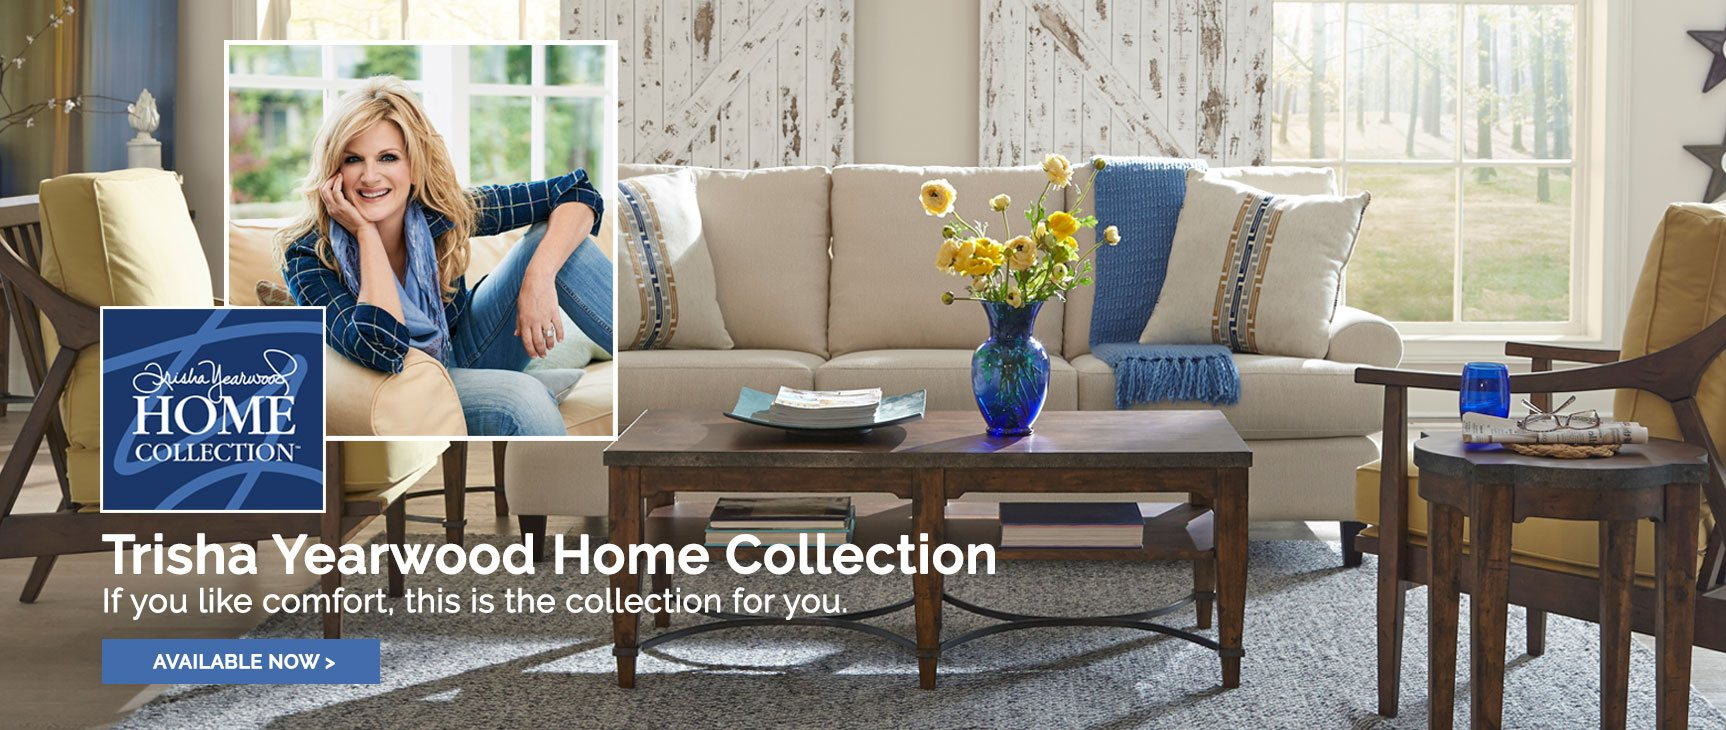 Trisha Yearwood Home Collection at Squan